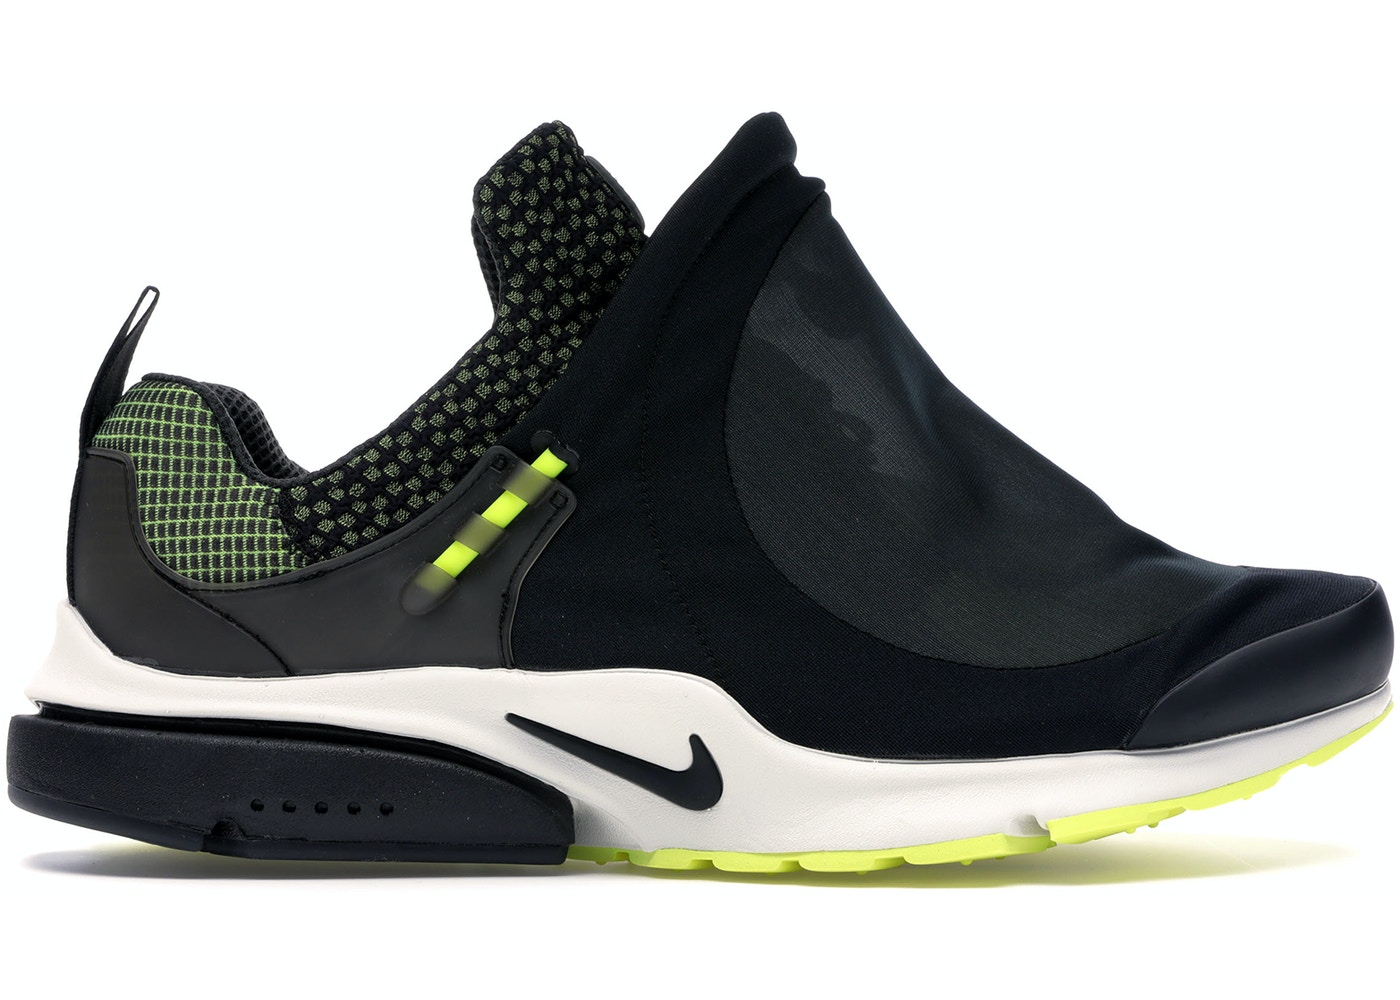 111bba2683 Sell. or Ask. Size 8. View All Bids. Nike Presto Foot Tent Comme des Garcons  Black